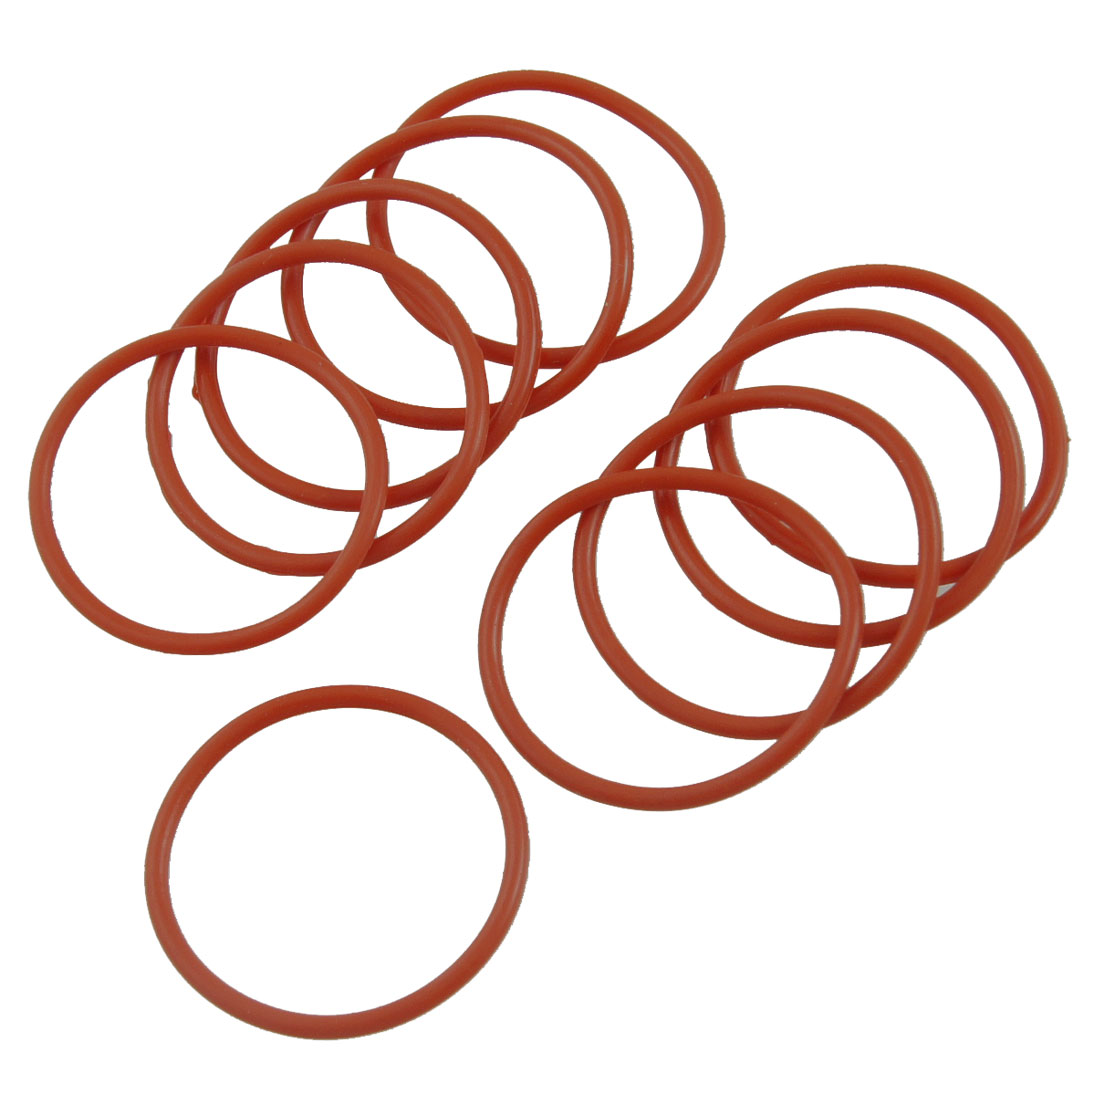 30mm x 2mm Silicone O Ring Oil Sealing Washers Grommets Red 10 Pcs